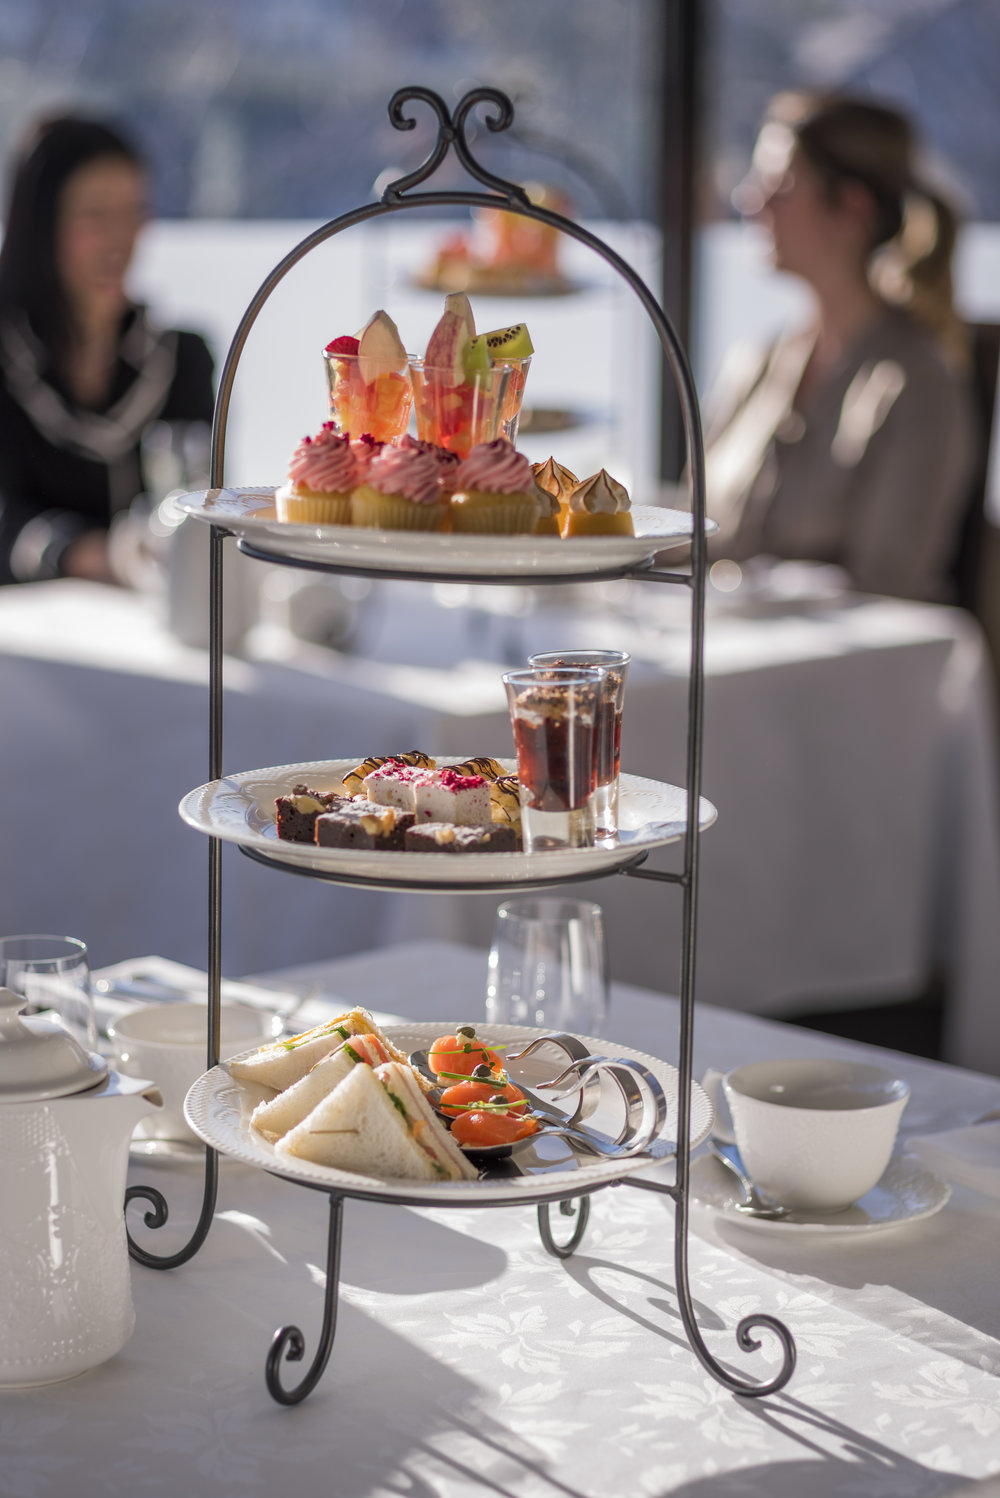 1. High Tea with your special number one at The George - 1. High Tea with your special number one at The GeorgeEnjoy a little bit of elegance over a high tea with friends. Perfect for Father - daughter times, an afternoon with the girls, or perhaps as a hens party. Available from 11:00am until 4pm Monday to Friday Available 11:30am until 4pm Saturday and Sunday Bookings essential, please call us direct on 03 371 0250 to book your High Tea experience at The George.#bucketlist #family #girlsday